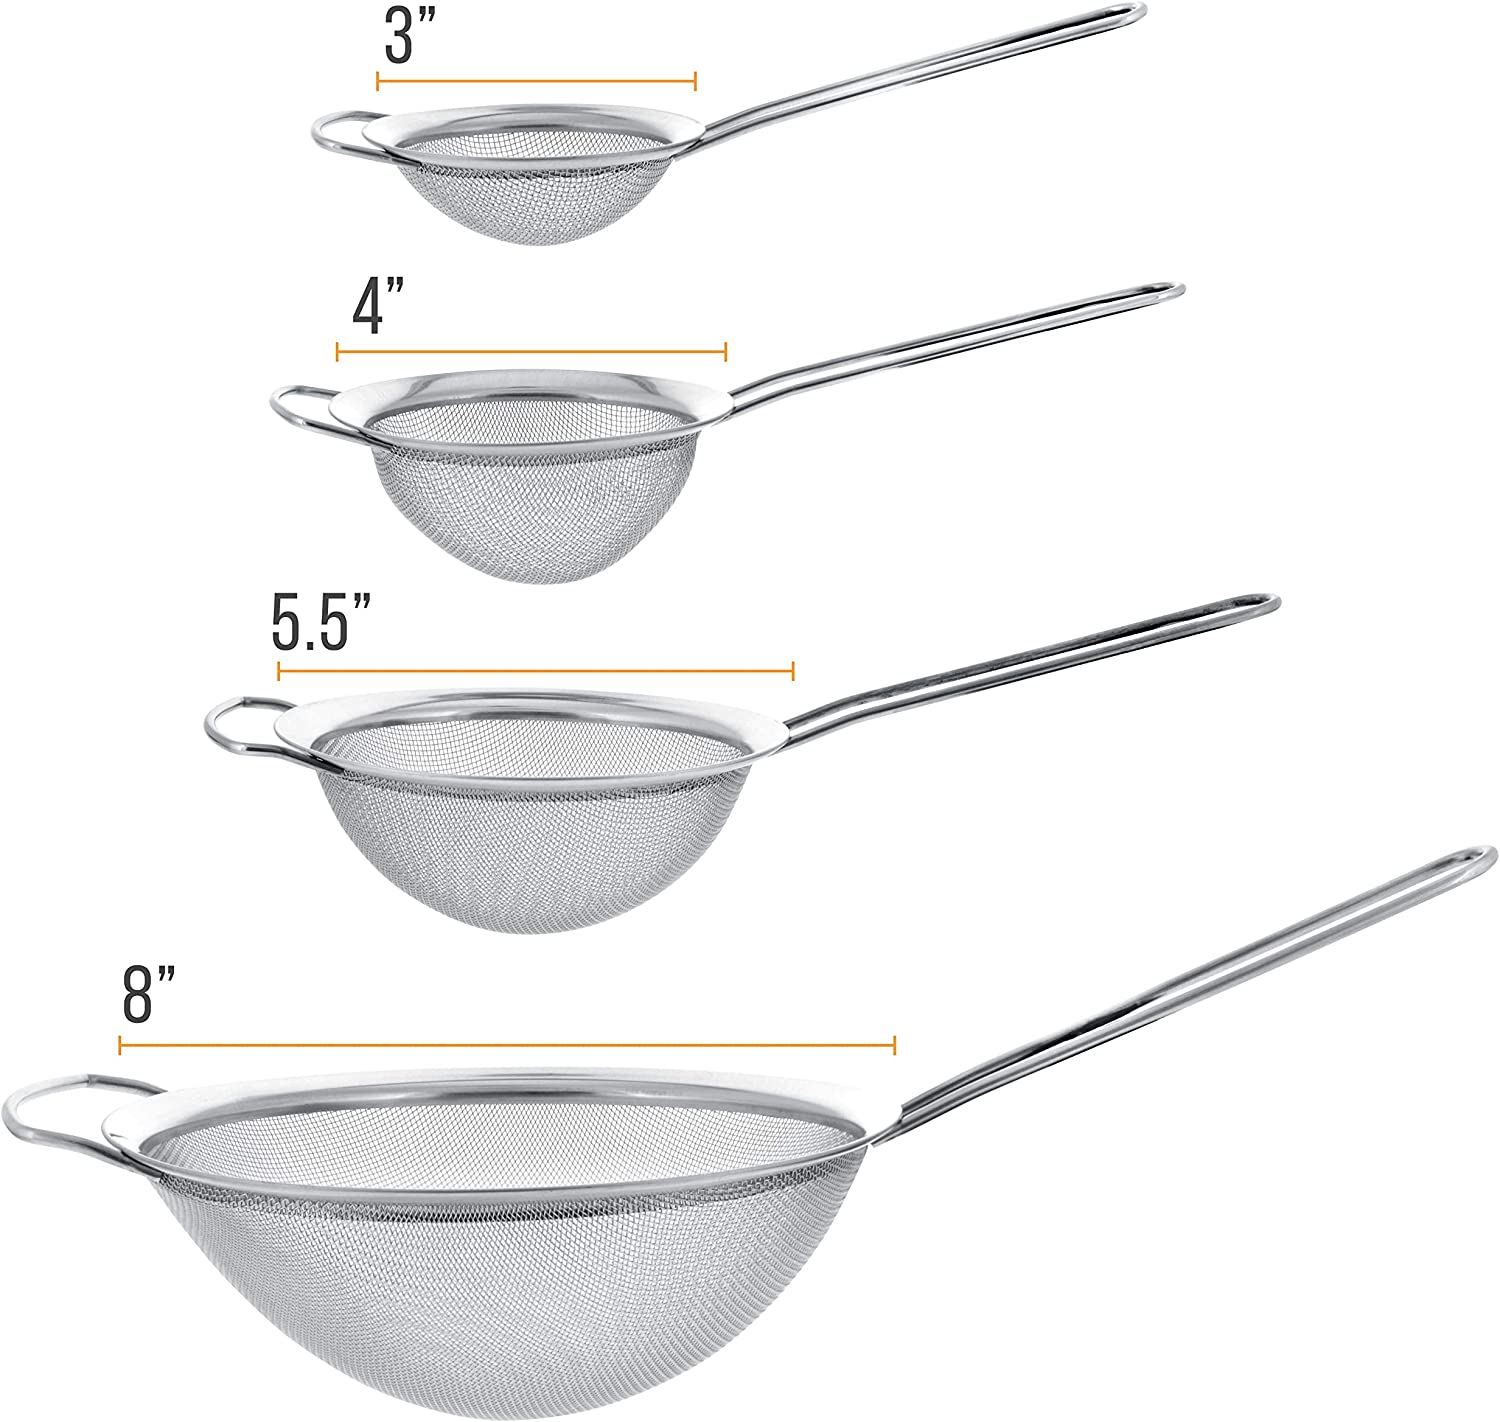 5.5 and 8 Sizes 4 Kitchen Supply Set of 3 Premium Quality-Double Mesh Extra Fine Stainless Steel Strainers with Comfortable Wooden Handles U.S